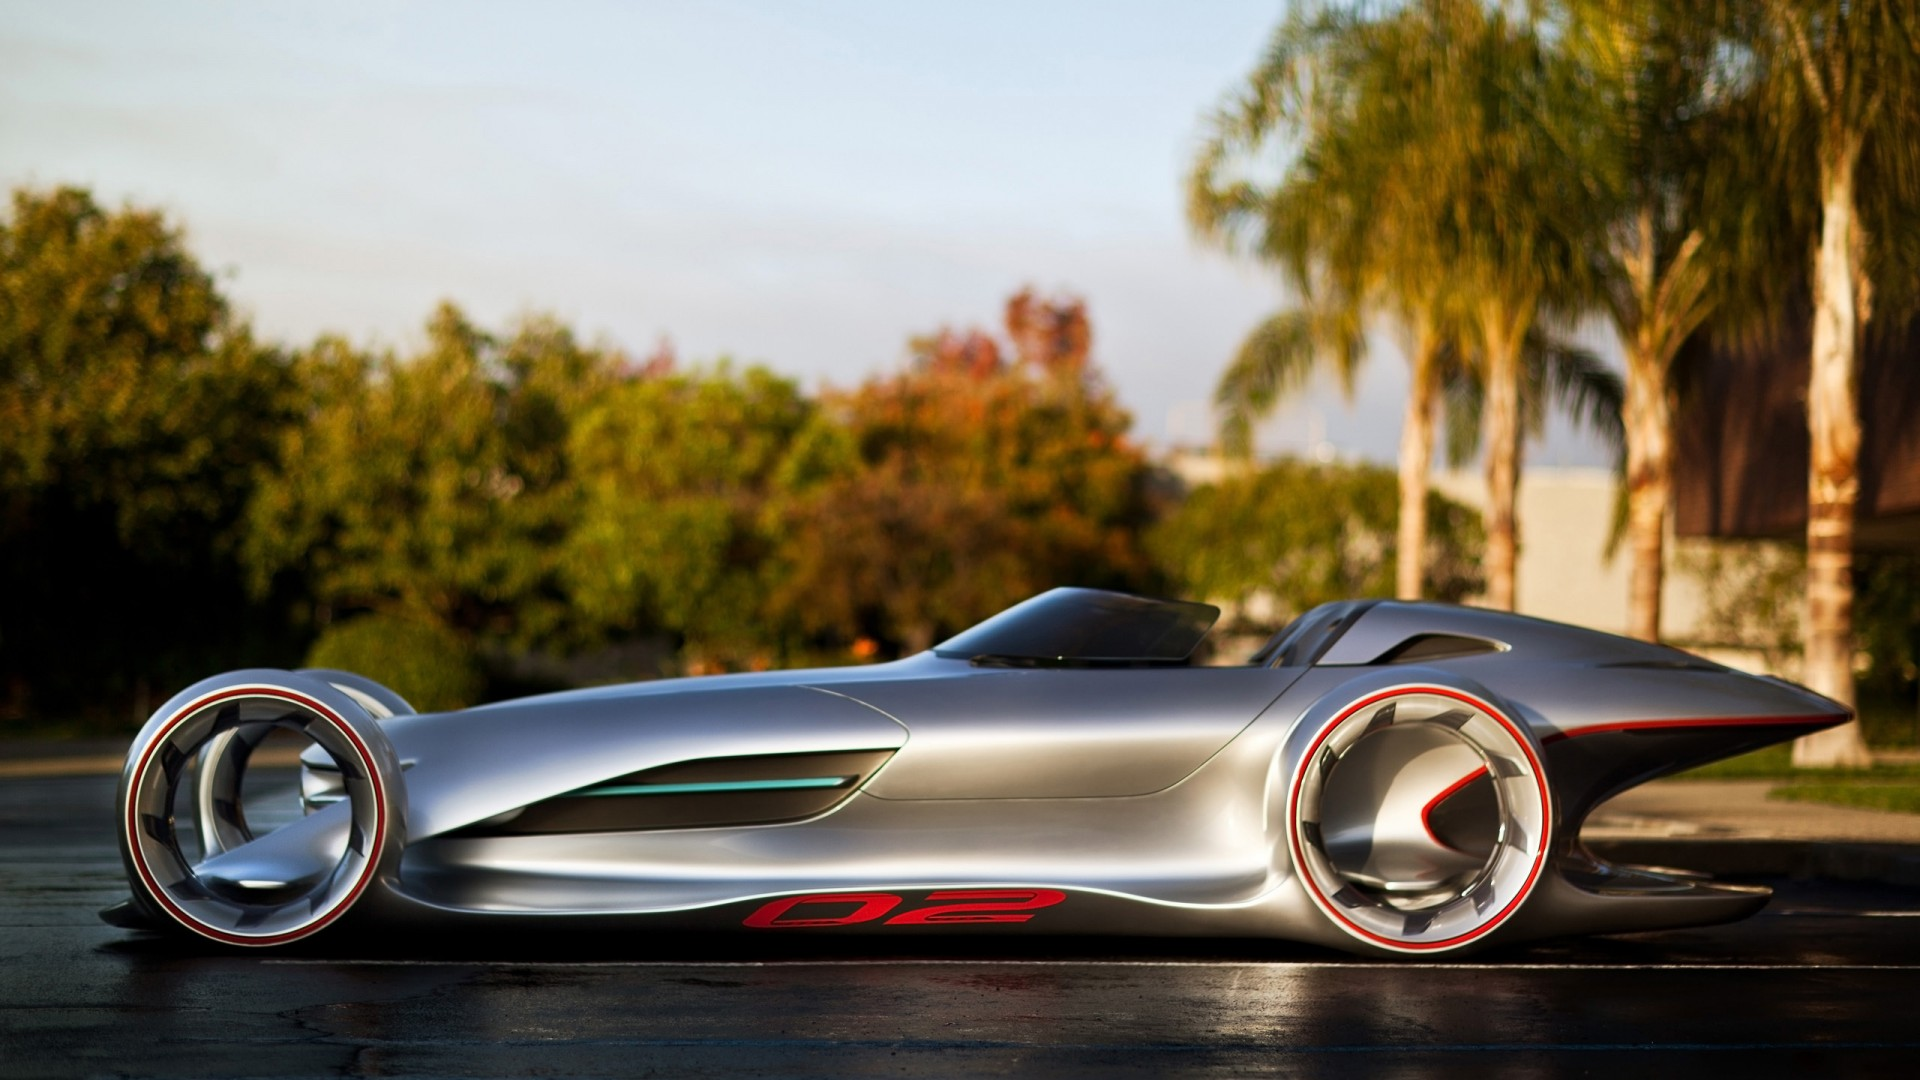 Mercedes benz silver arrow concept 2011 wallpaper hd car for Mercedes benz silver